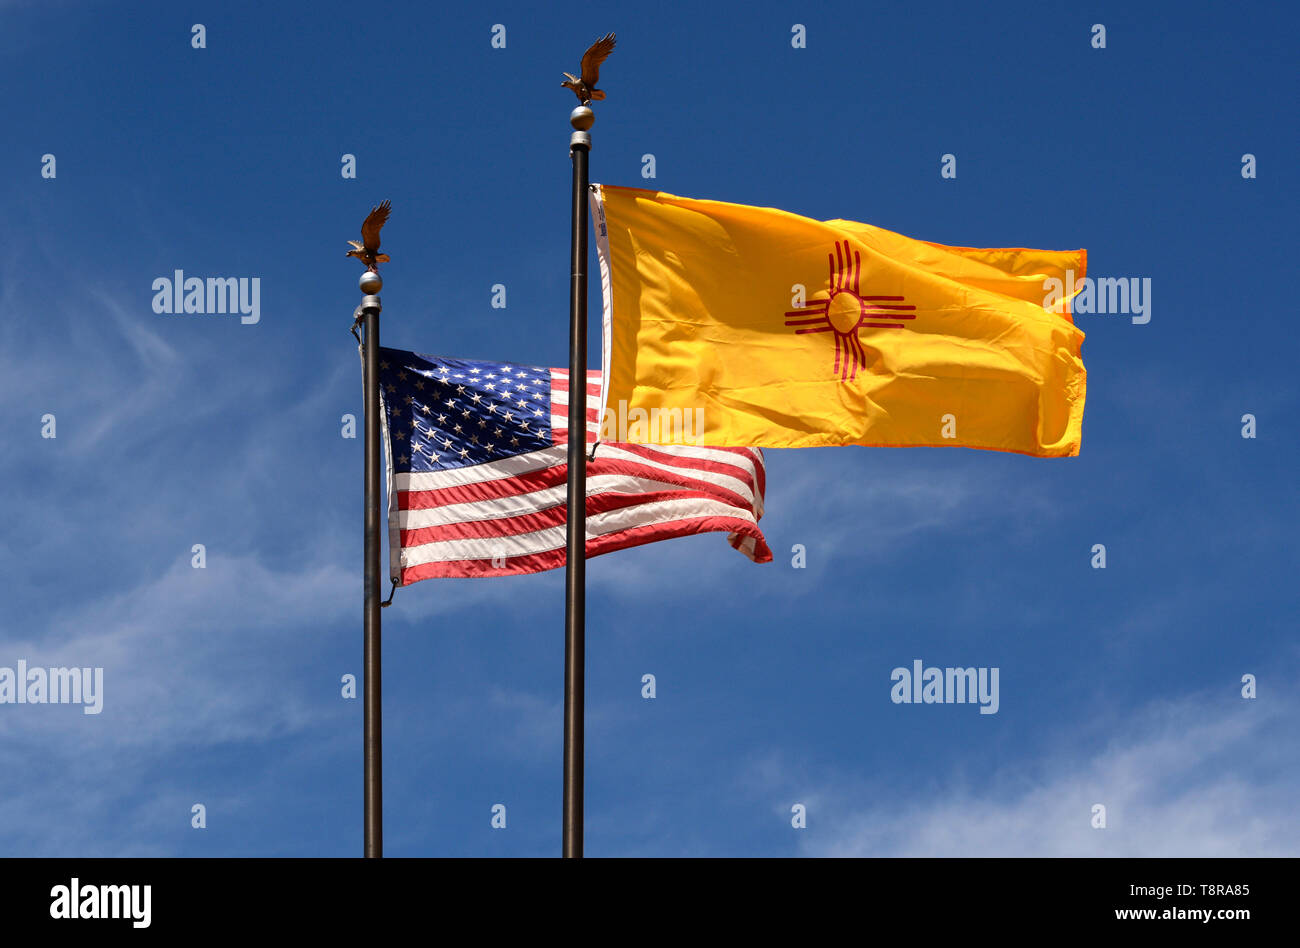 An American Flag And A New Mexico State Flag Fly Over The New Mexico Museum Of Art In Santa Fe New Mexico Usa Stock Photo Alamy